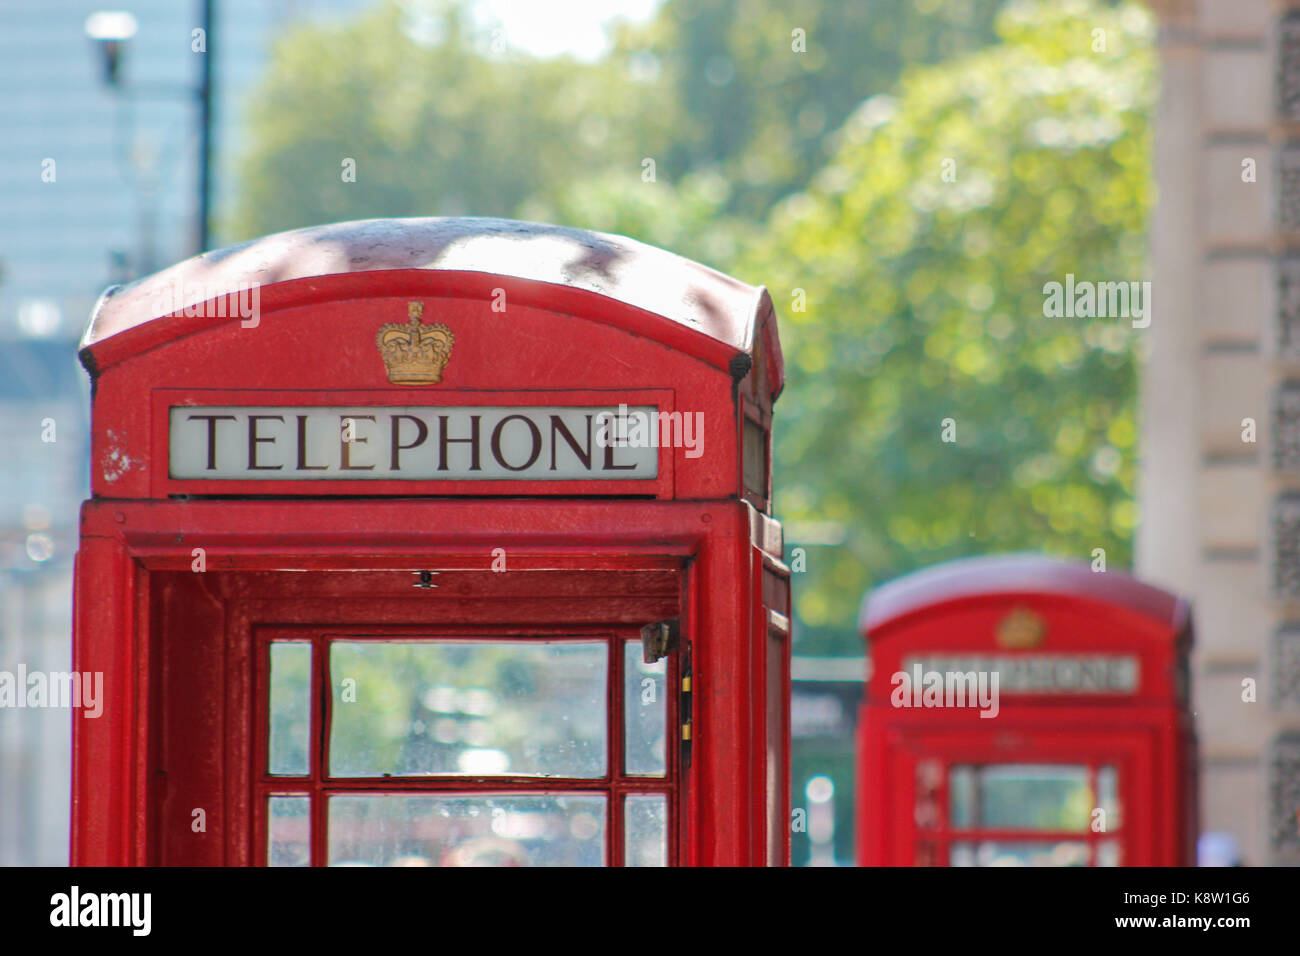 close up photo of iconic London phone box on the streets of London - Stock Image